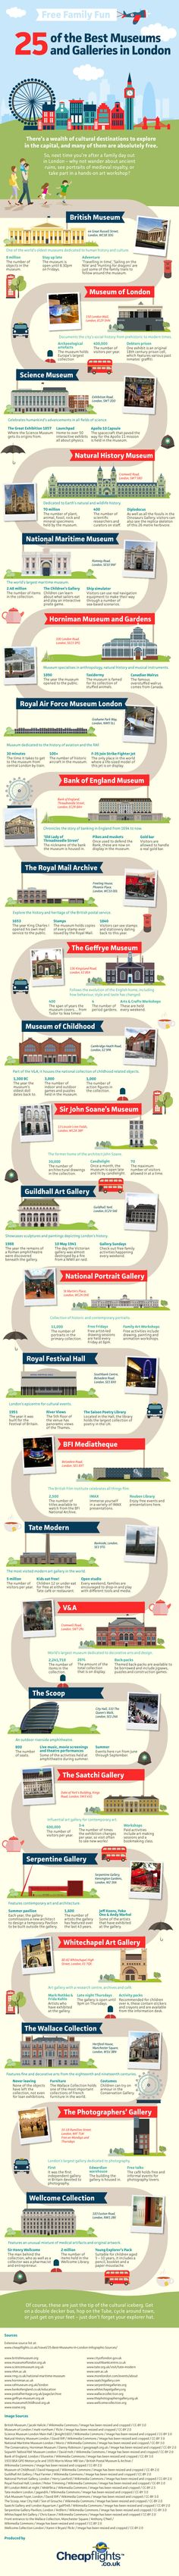 25 of the Best Museums and Galleries in London | Travel on Inspiration